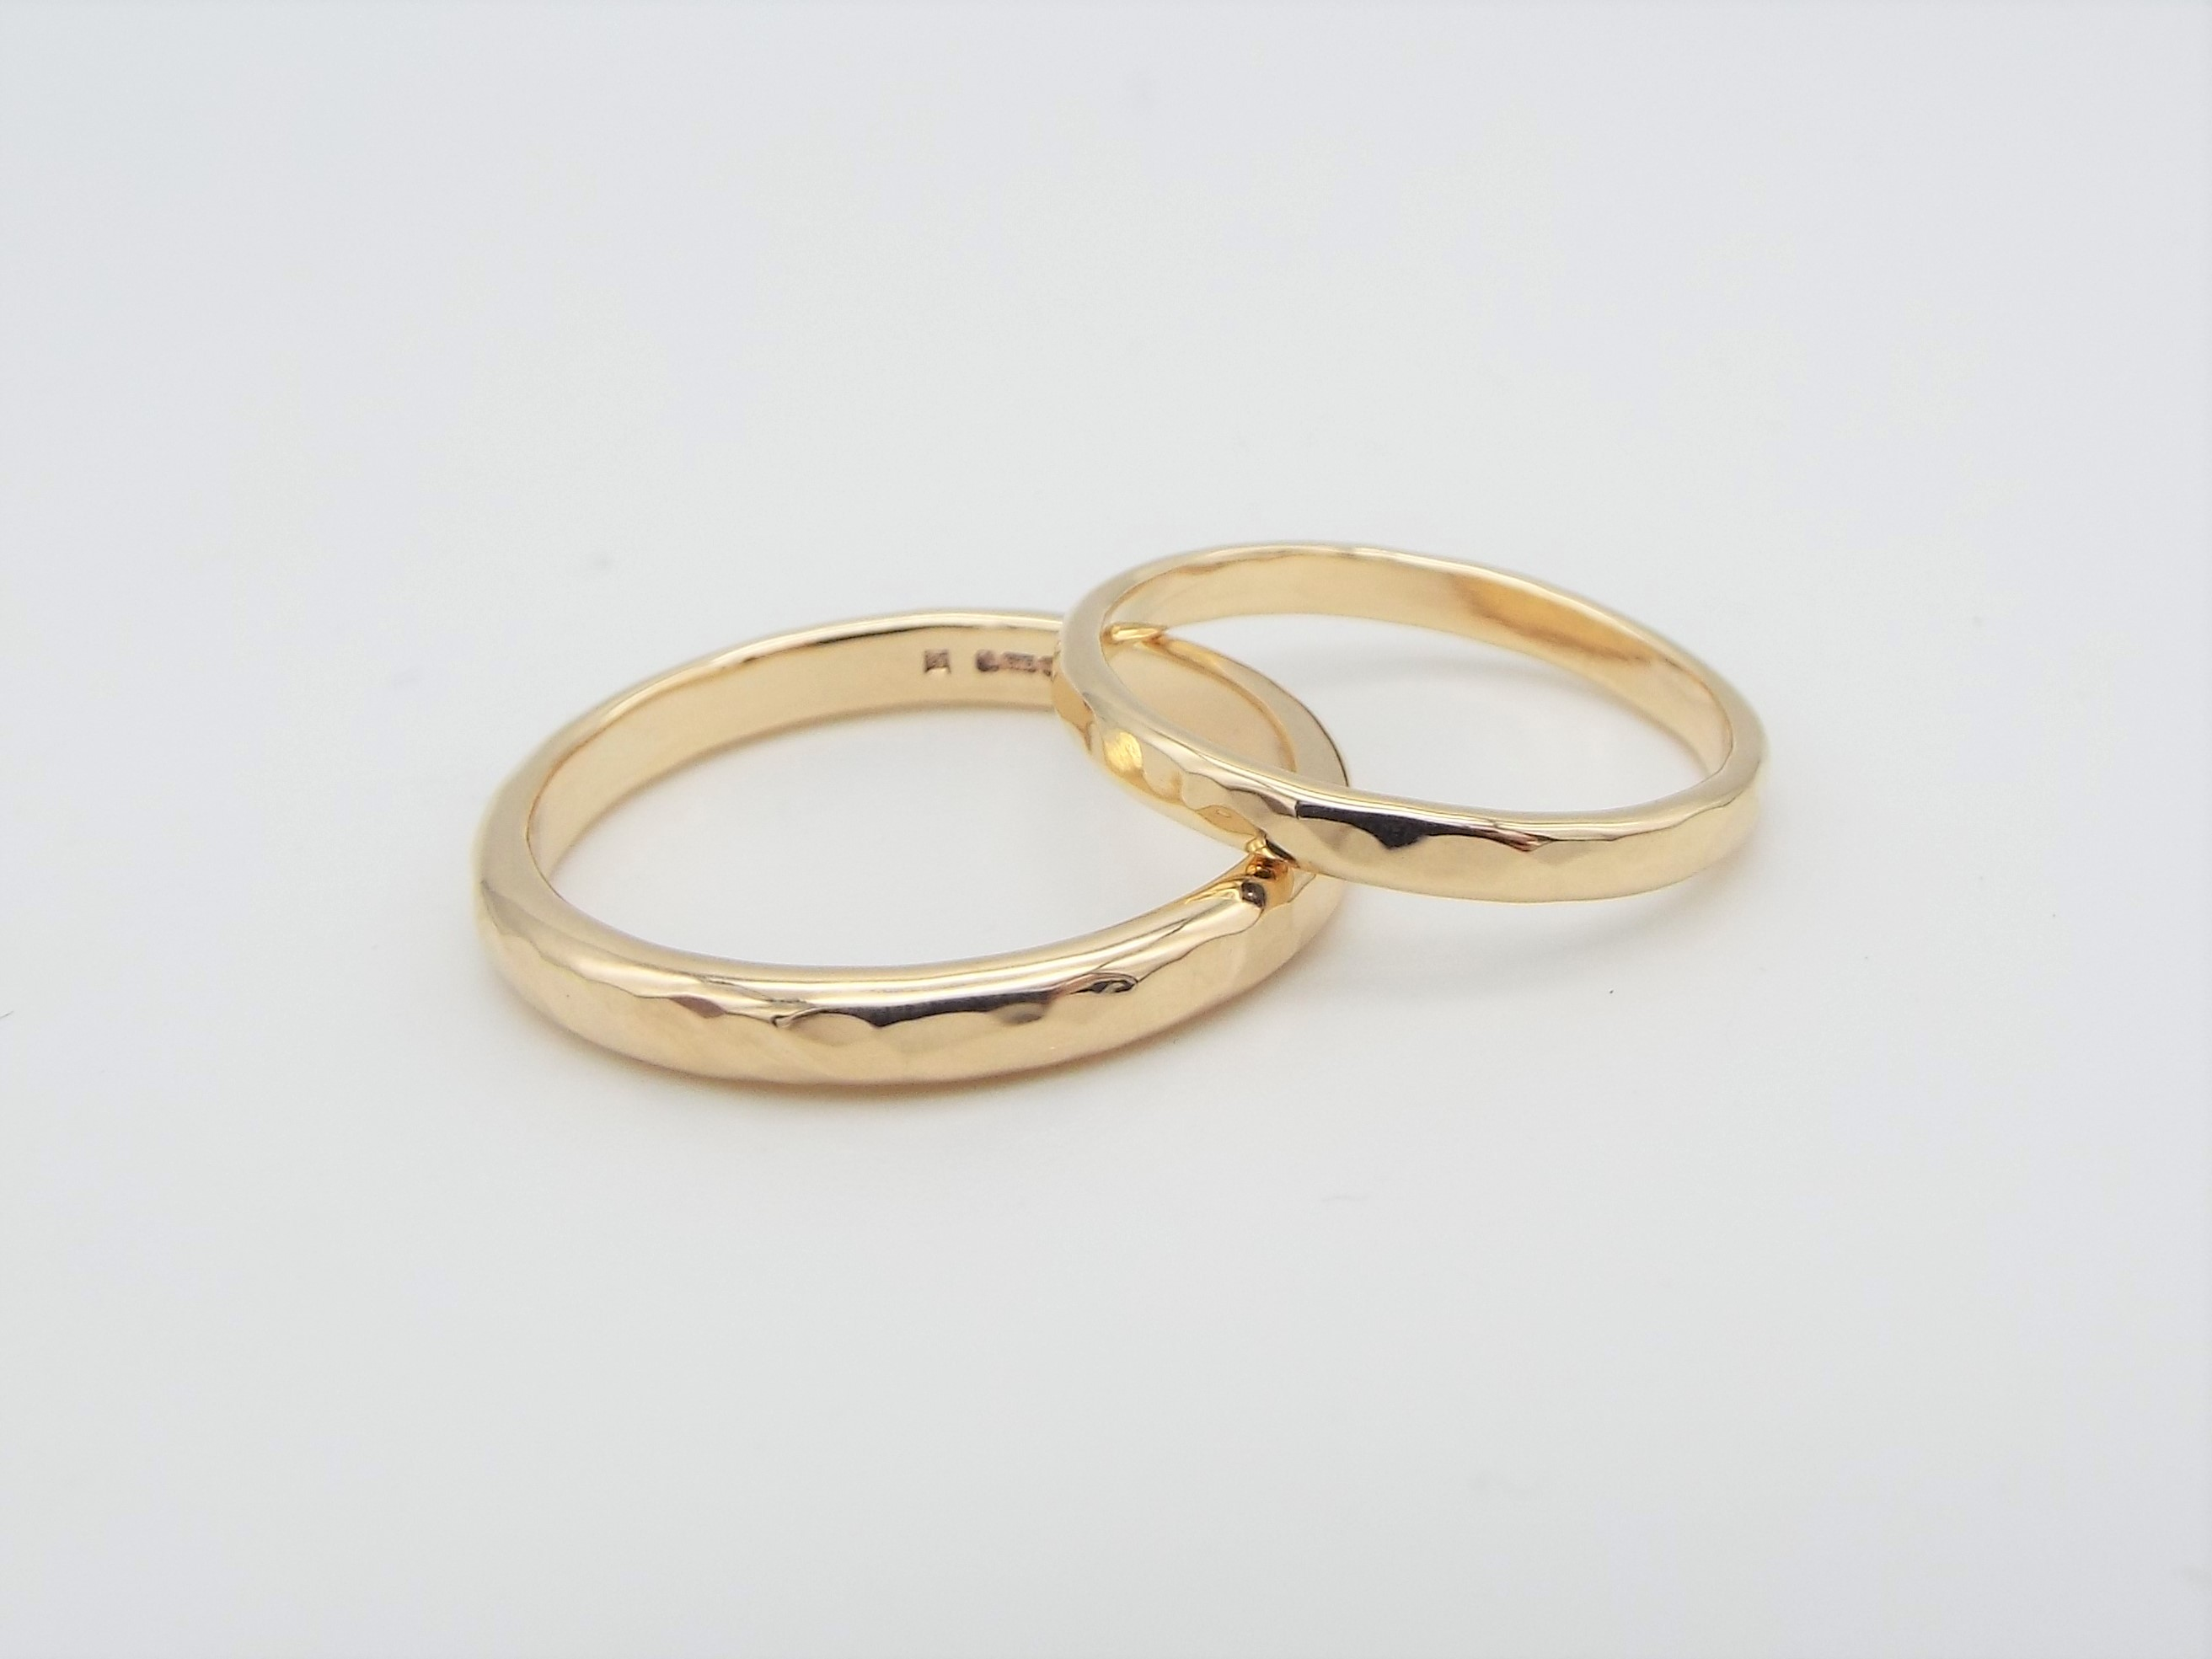 Hammered Gold His and Her Wedding Ring Set - 9ct Yellow Gold